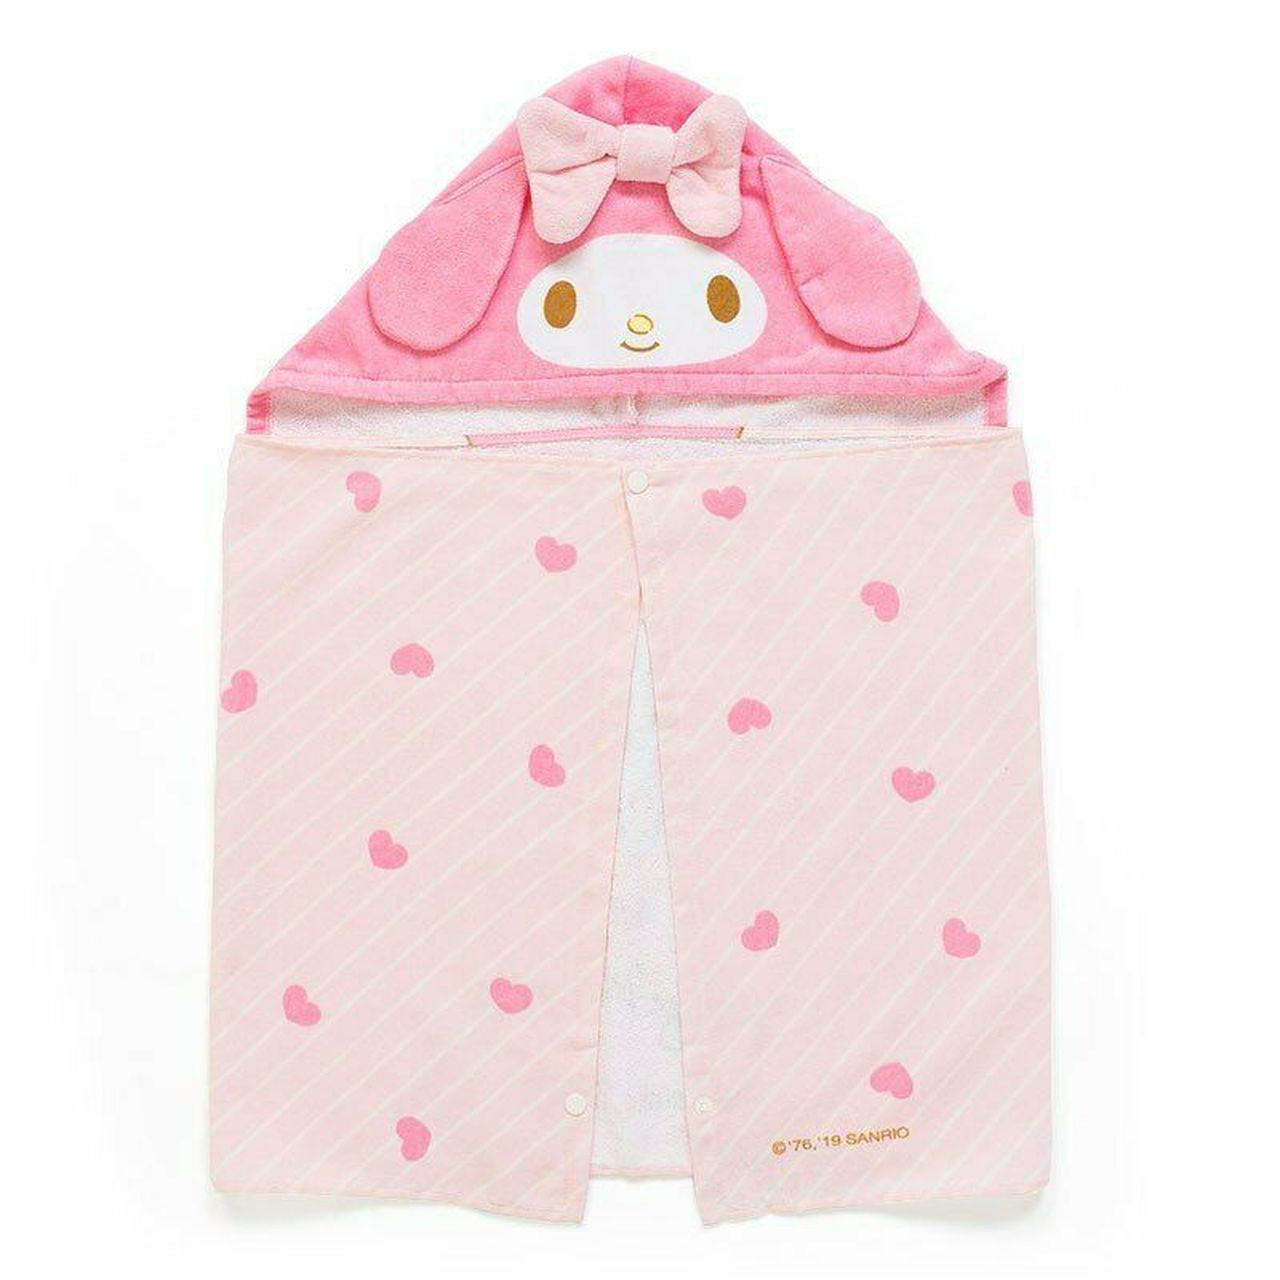 My Melody Hooded Towel